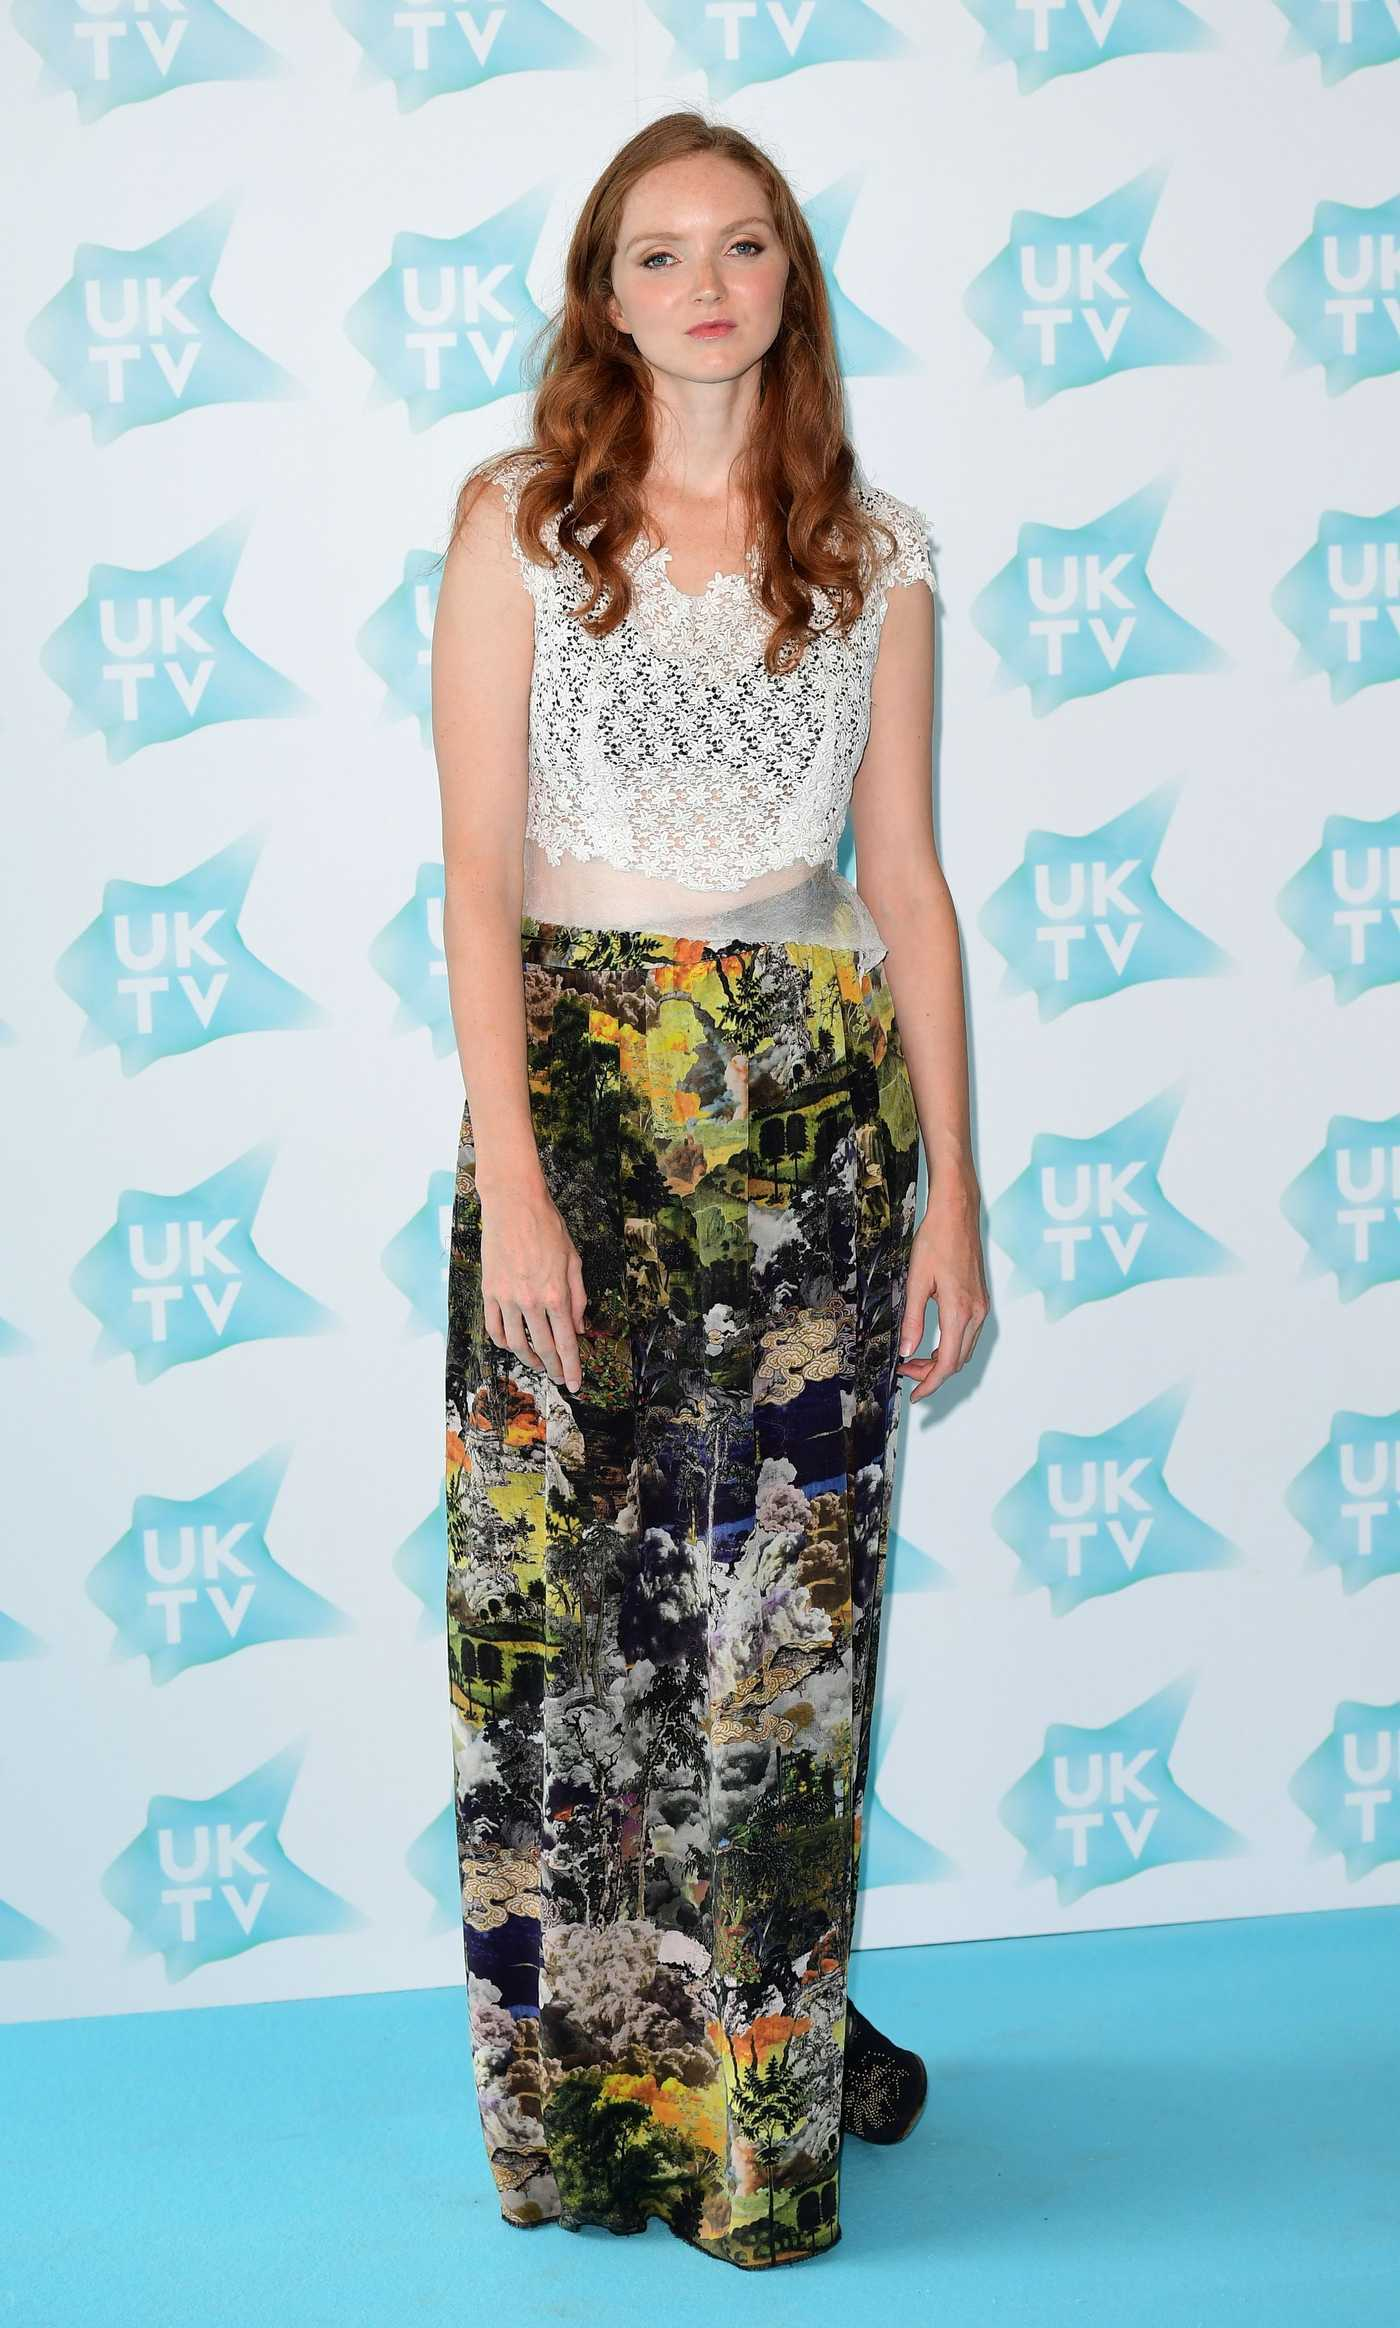 Lily Cole at UKTV Live New Season Launch 09/05/2016